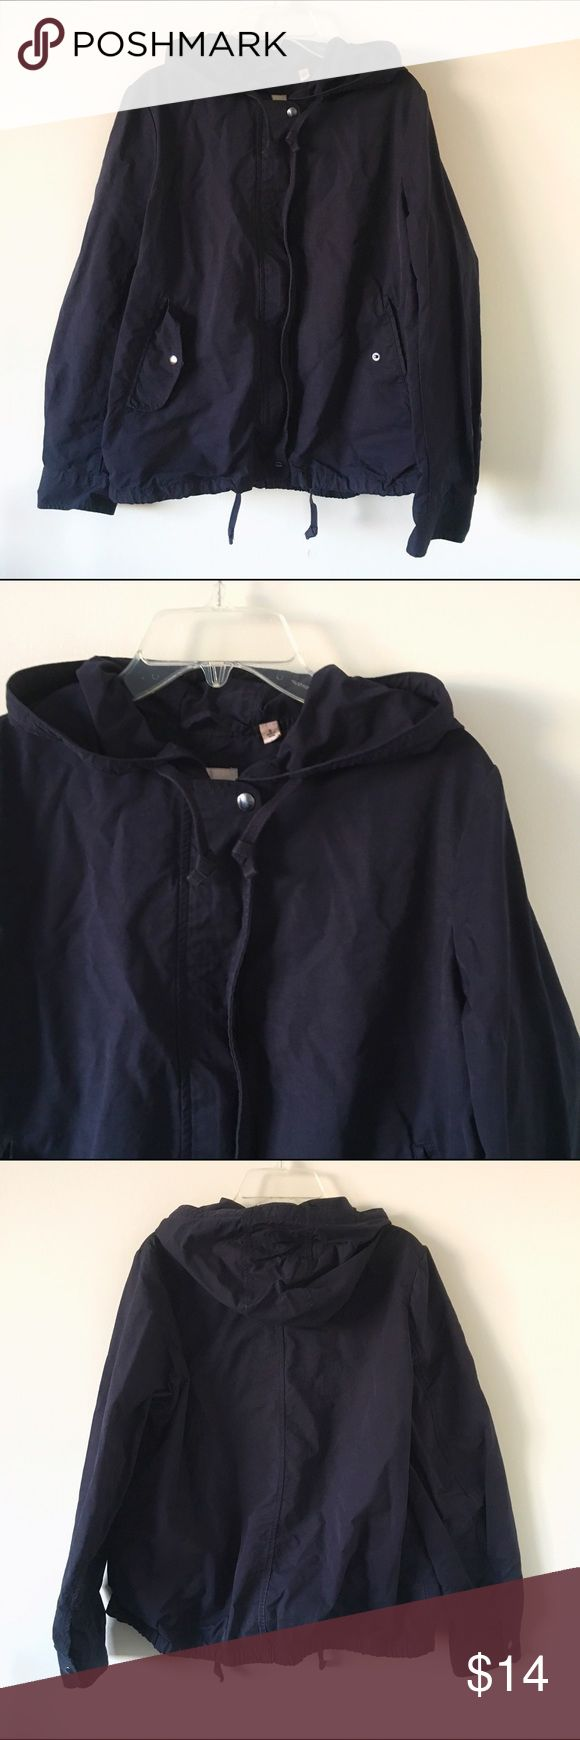 Uniqlo Navy Windbreaker Jacket A navy windbreaker-style jacket with hood, perfect for fall weather. Two outside pockets with buttoned flaps. Super cozy with a brushed feel to the fabric. Uniqlo Jackets & Coats